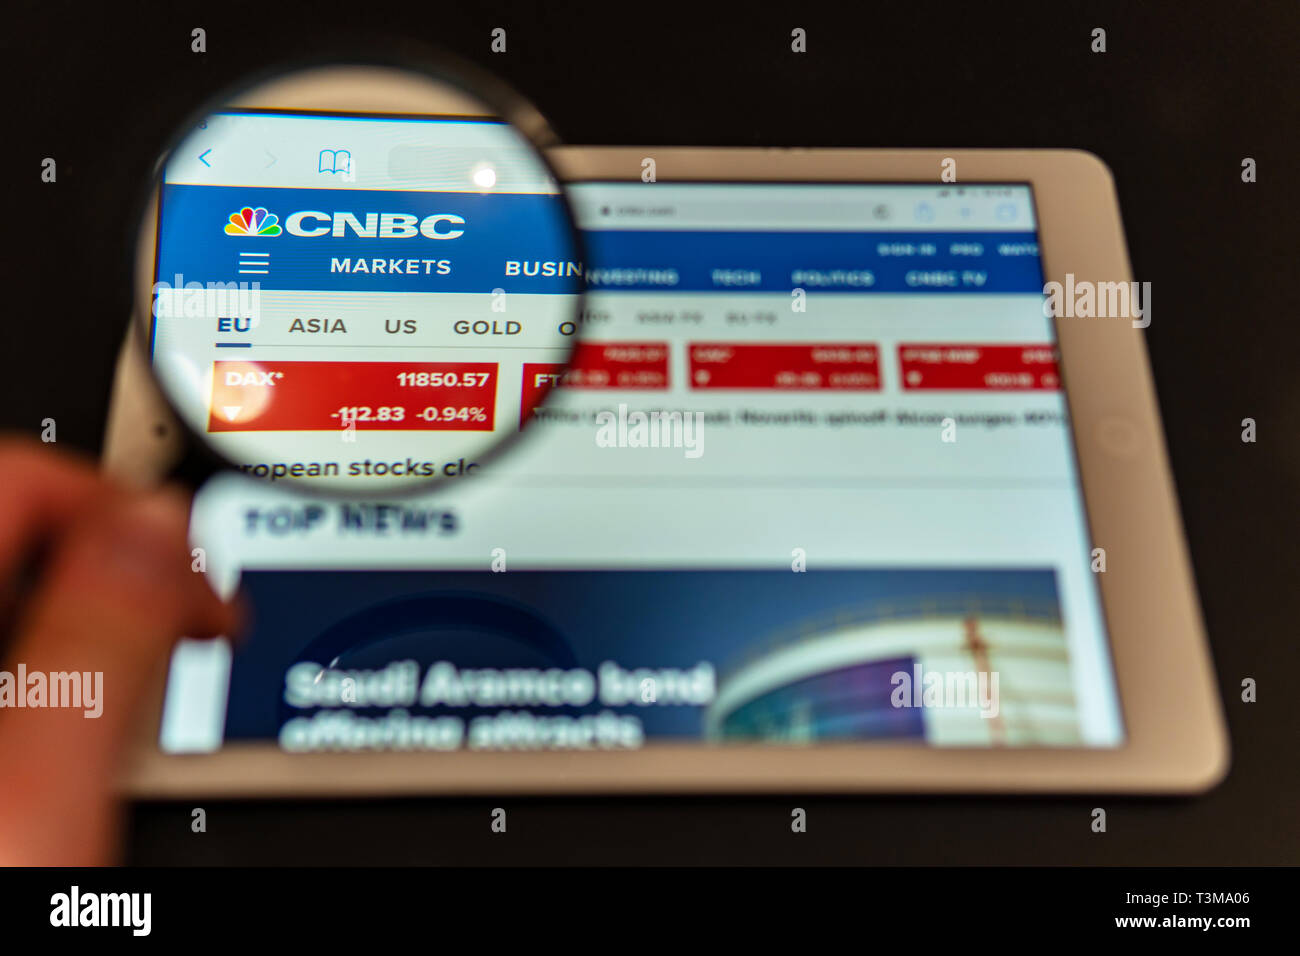 CNBC News website homepage on the tablet screen. CNBC News channel logo visible  through a magnifying glass. Marketing concept - Stock Image